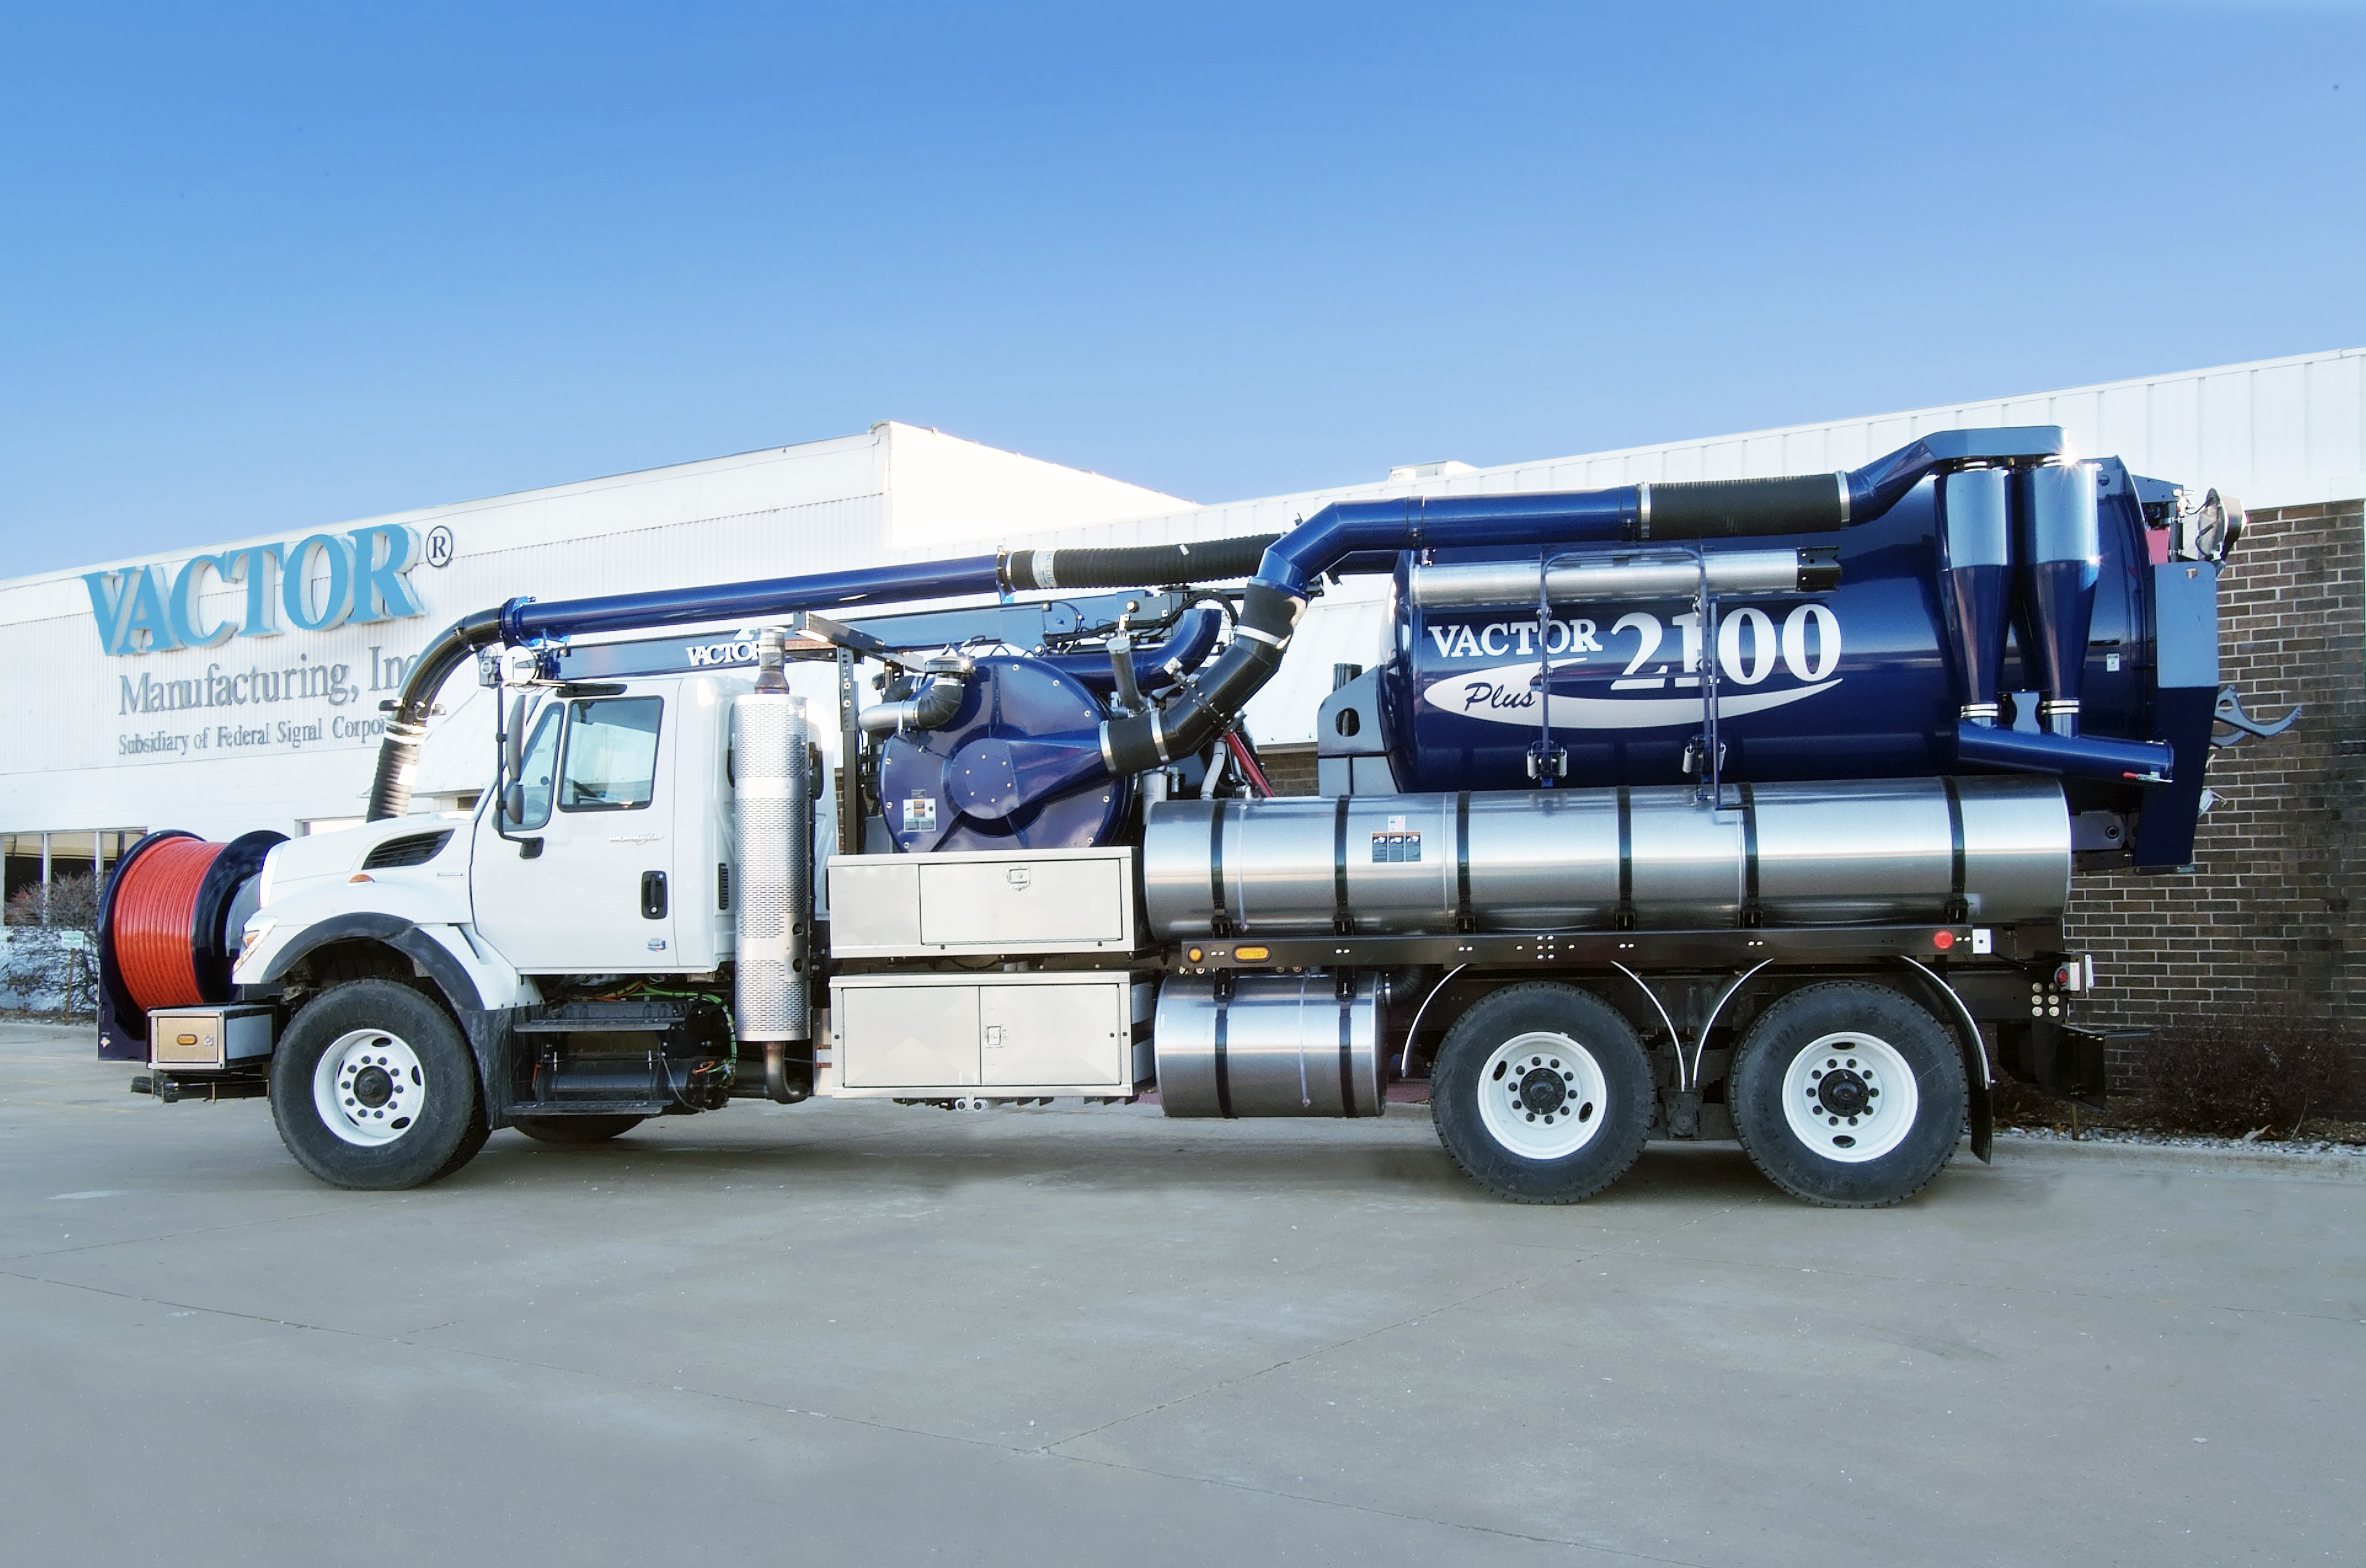 Redesigned Vactor 2100 Sewer Cleaner Debuts Underground